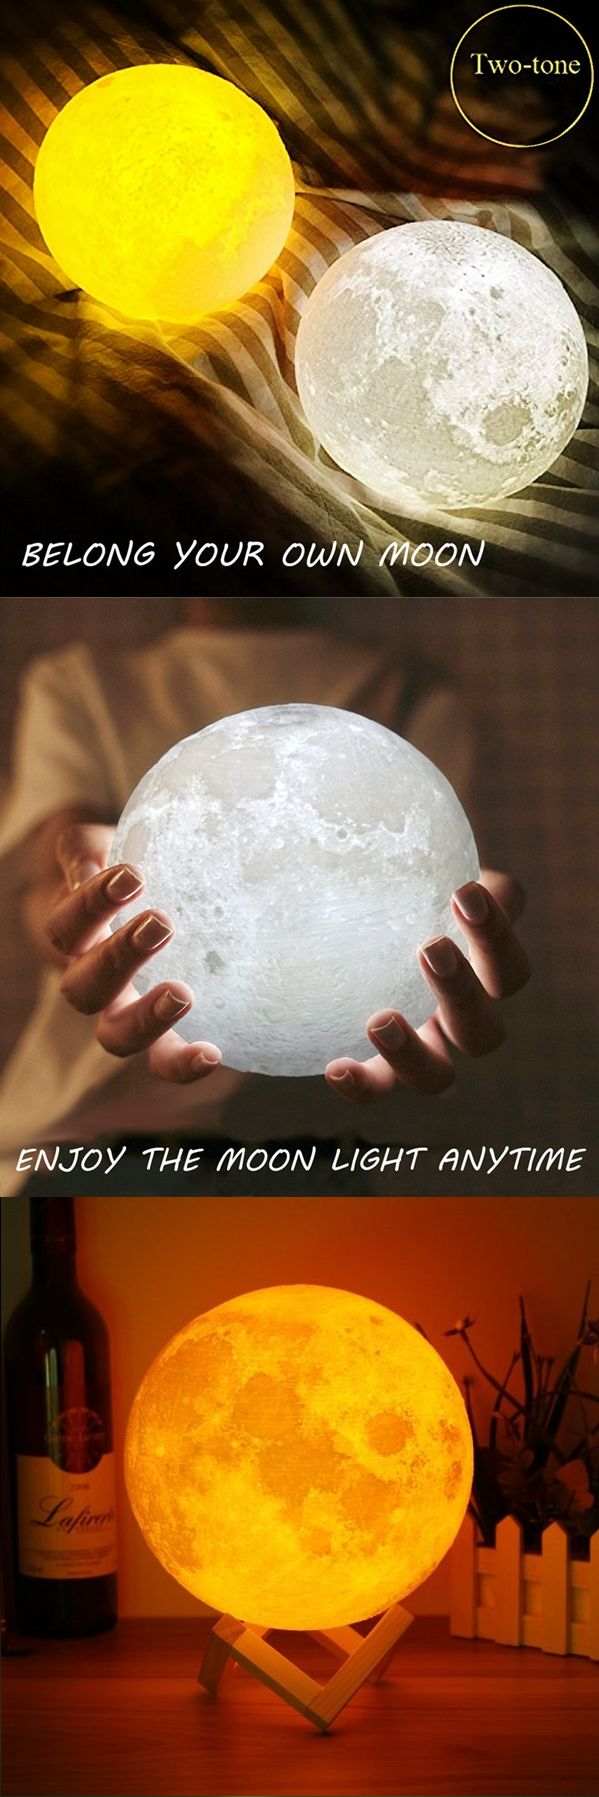 So Beautoful Moon Lamp Light!Must Have One in My Room.Right?2 Color Change Touch Switch.It's Amazing��